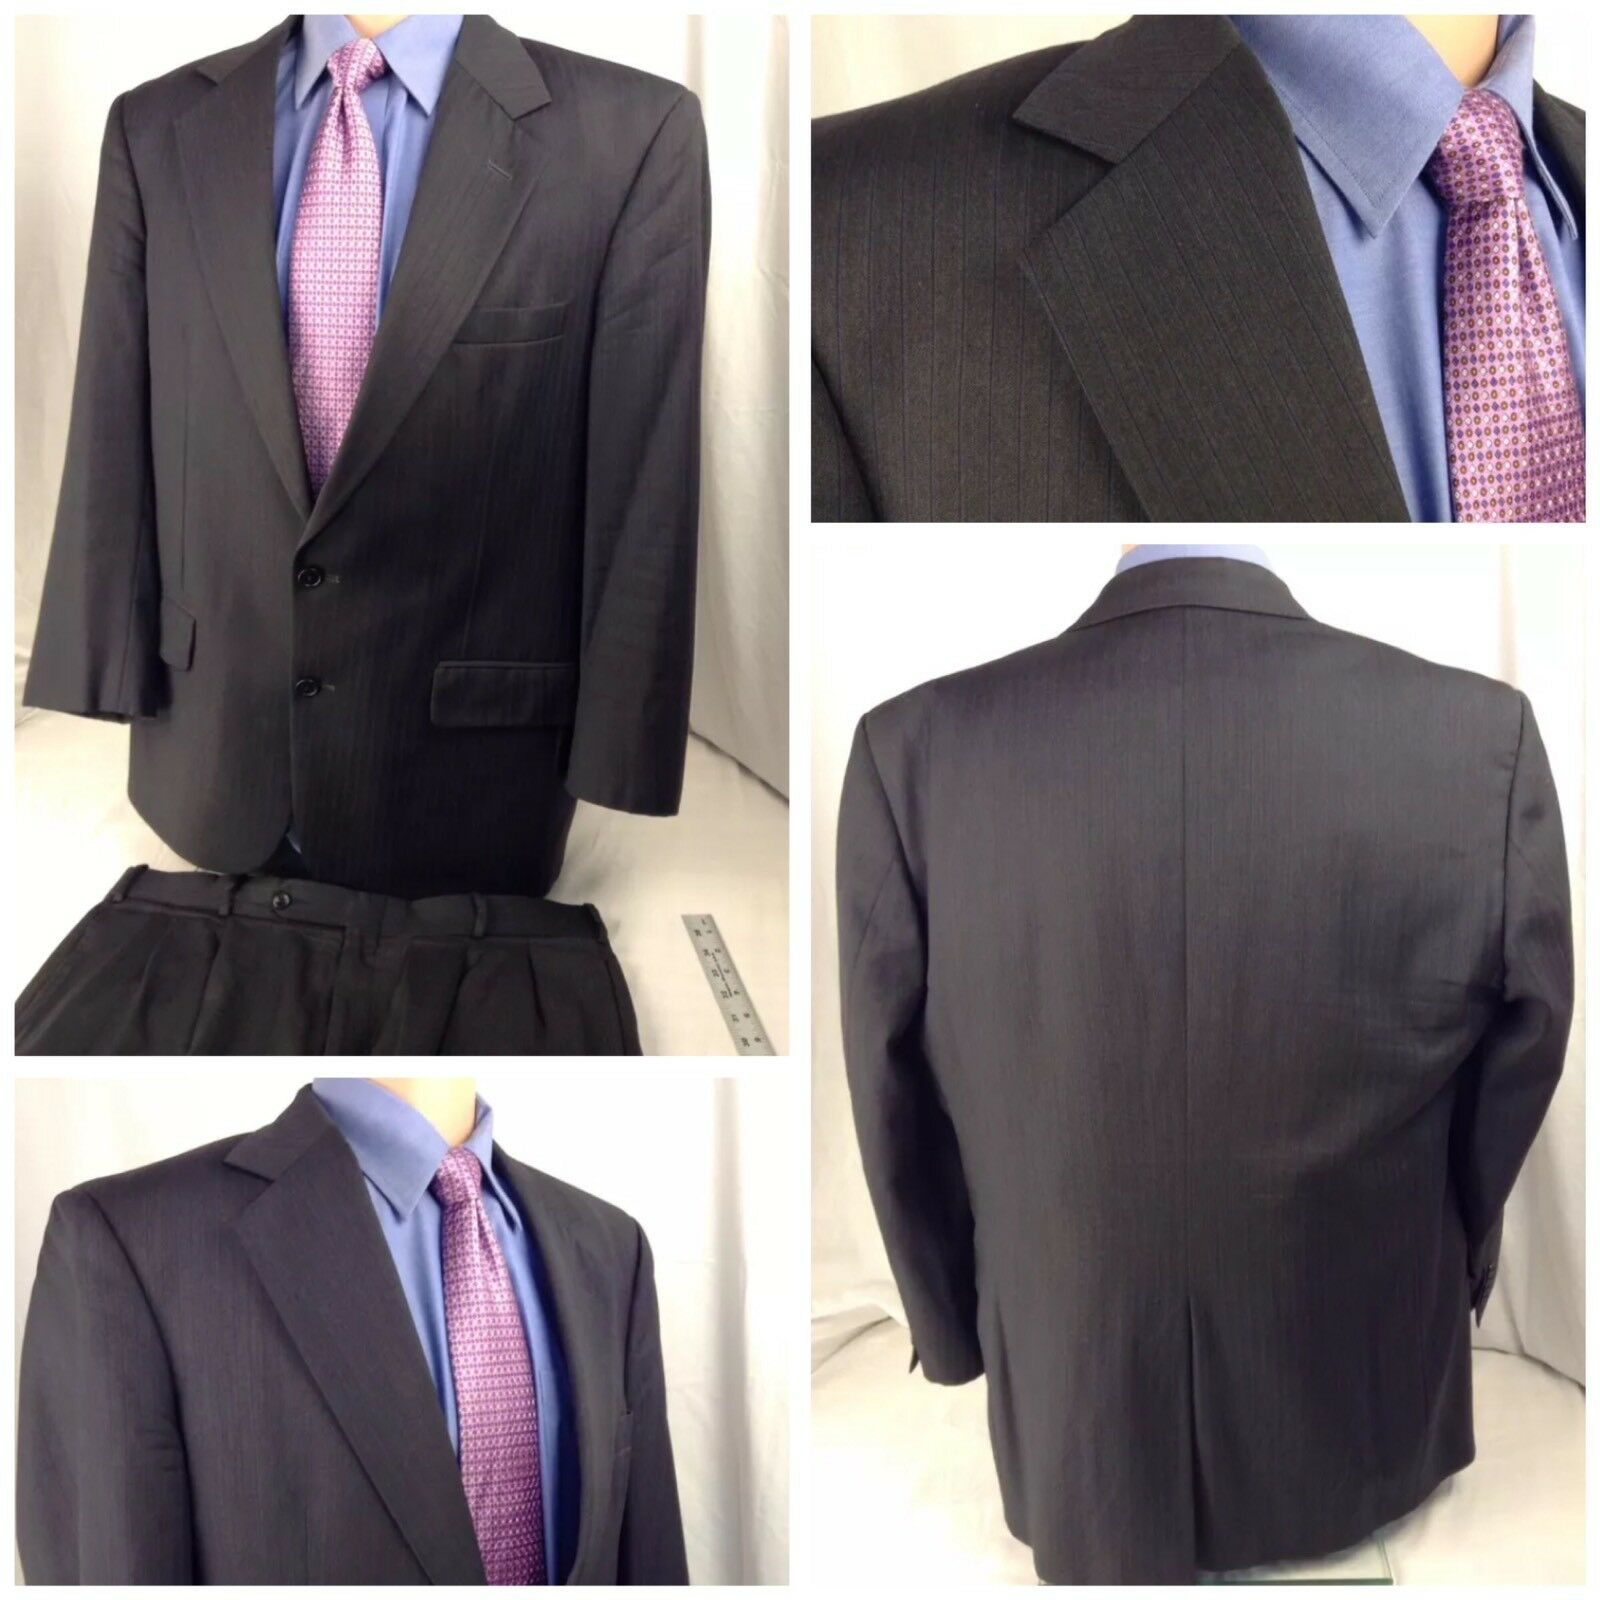 Made To Measure Custom Suit 42R Charcoal Stripe Wool 36x28 Pleats BL151 YGI